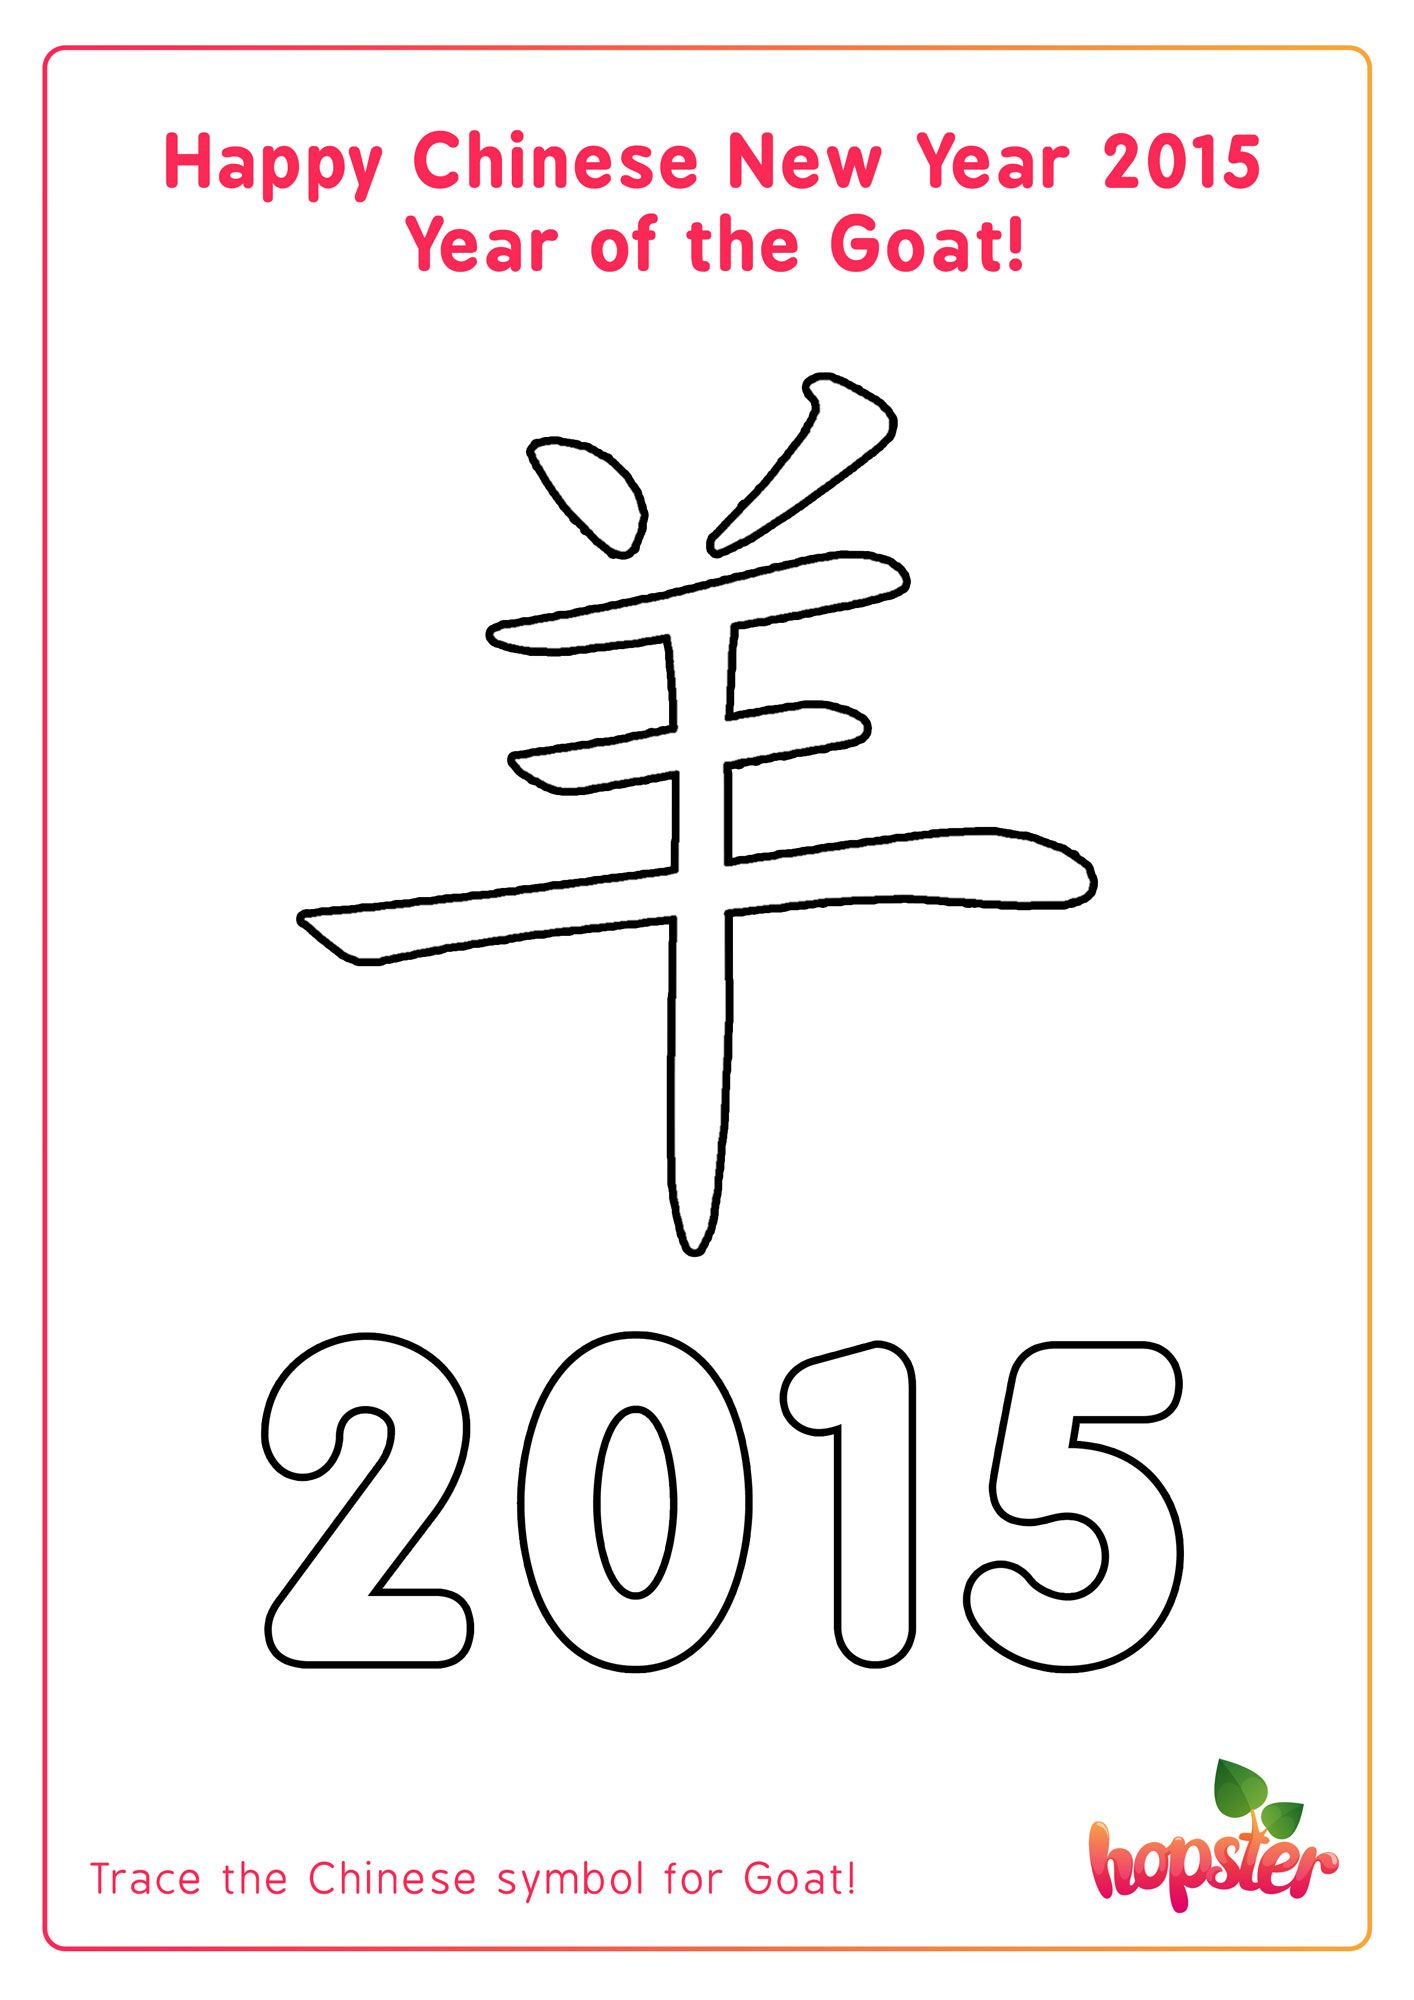 Learn How To Draw The Mandarin Symbol For Goat Happy Chinese New